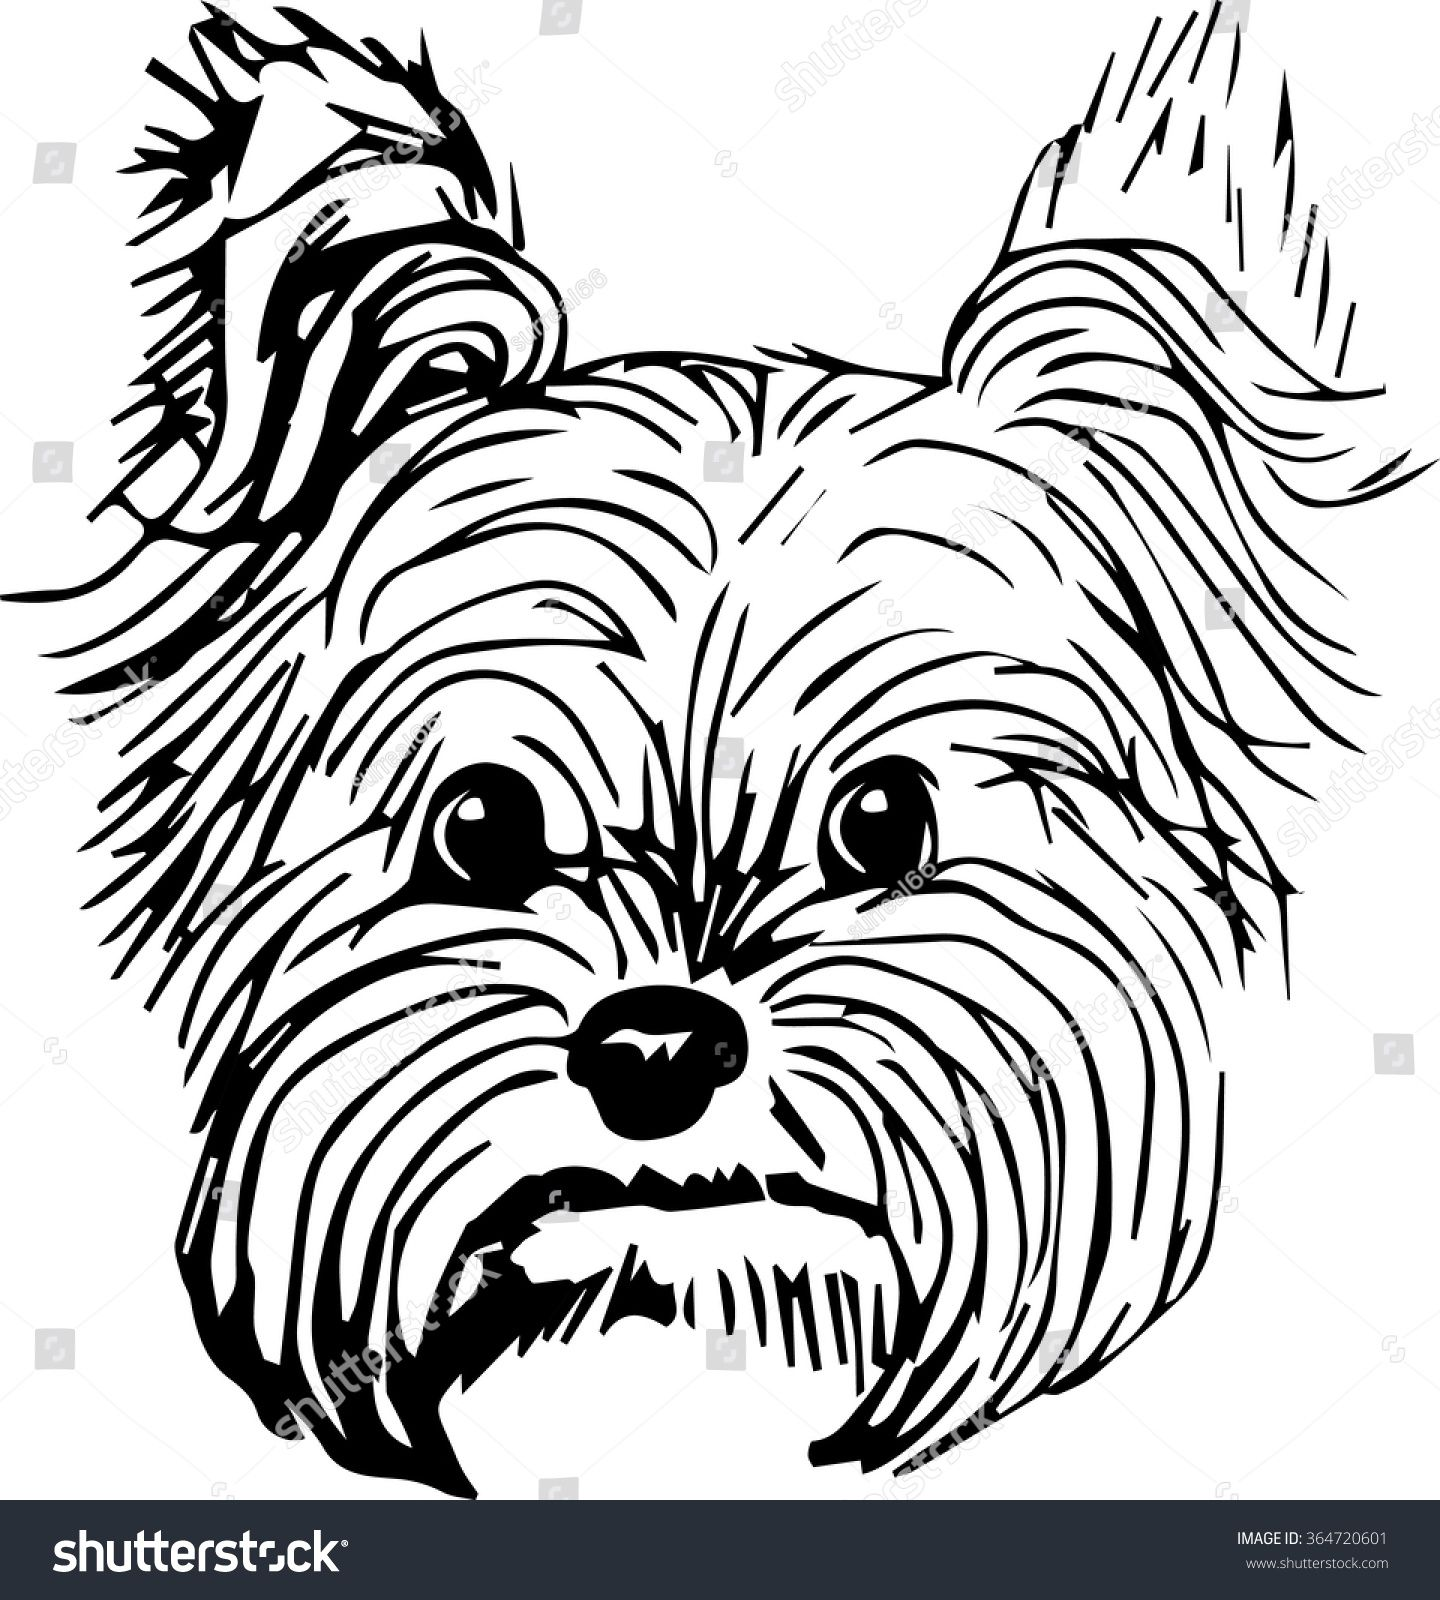 Yorkshire Terrier Dog Hand Drawn Sketch Purebred Small Dog Face On White Background Dog Drawing Dog Sketch Yorkie Dogs [ 1600 x 1440 Pixel ]